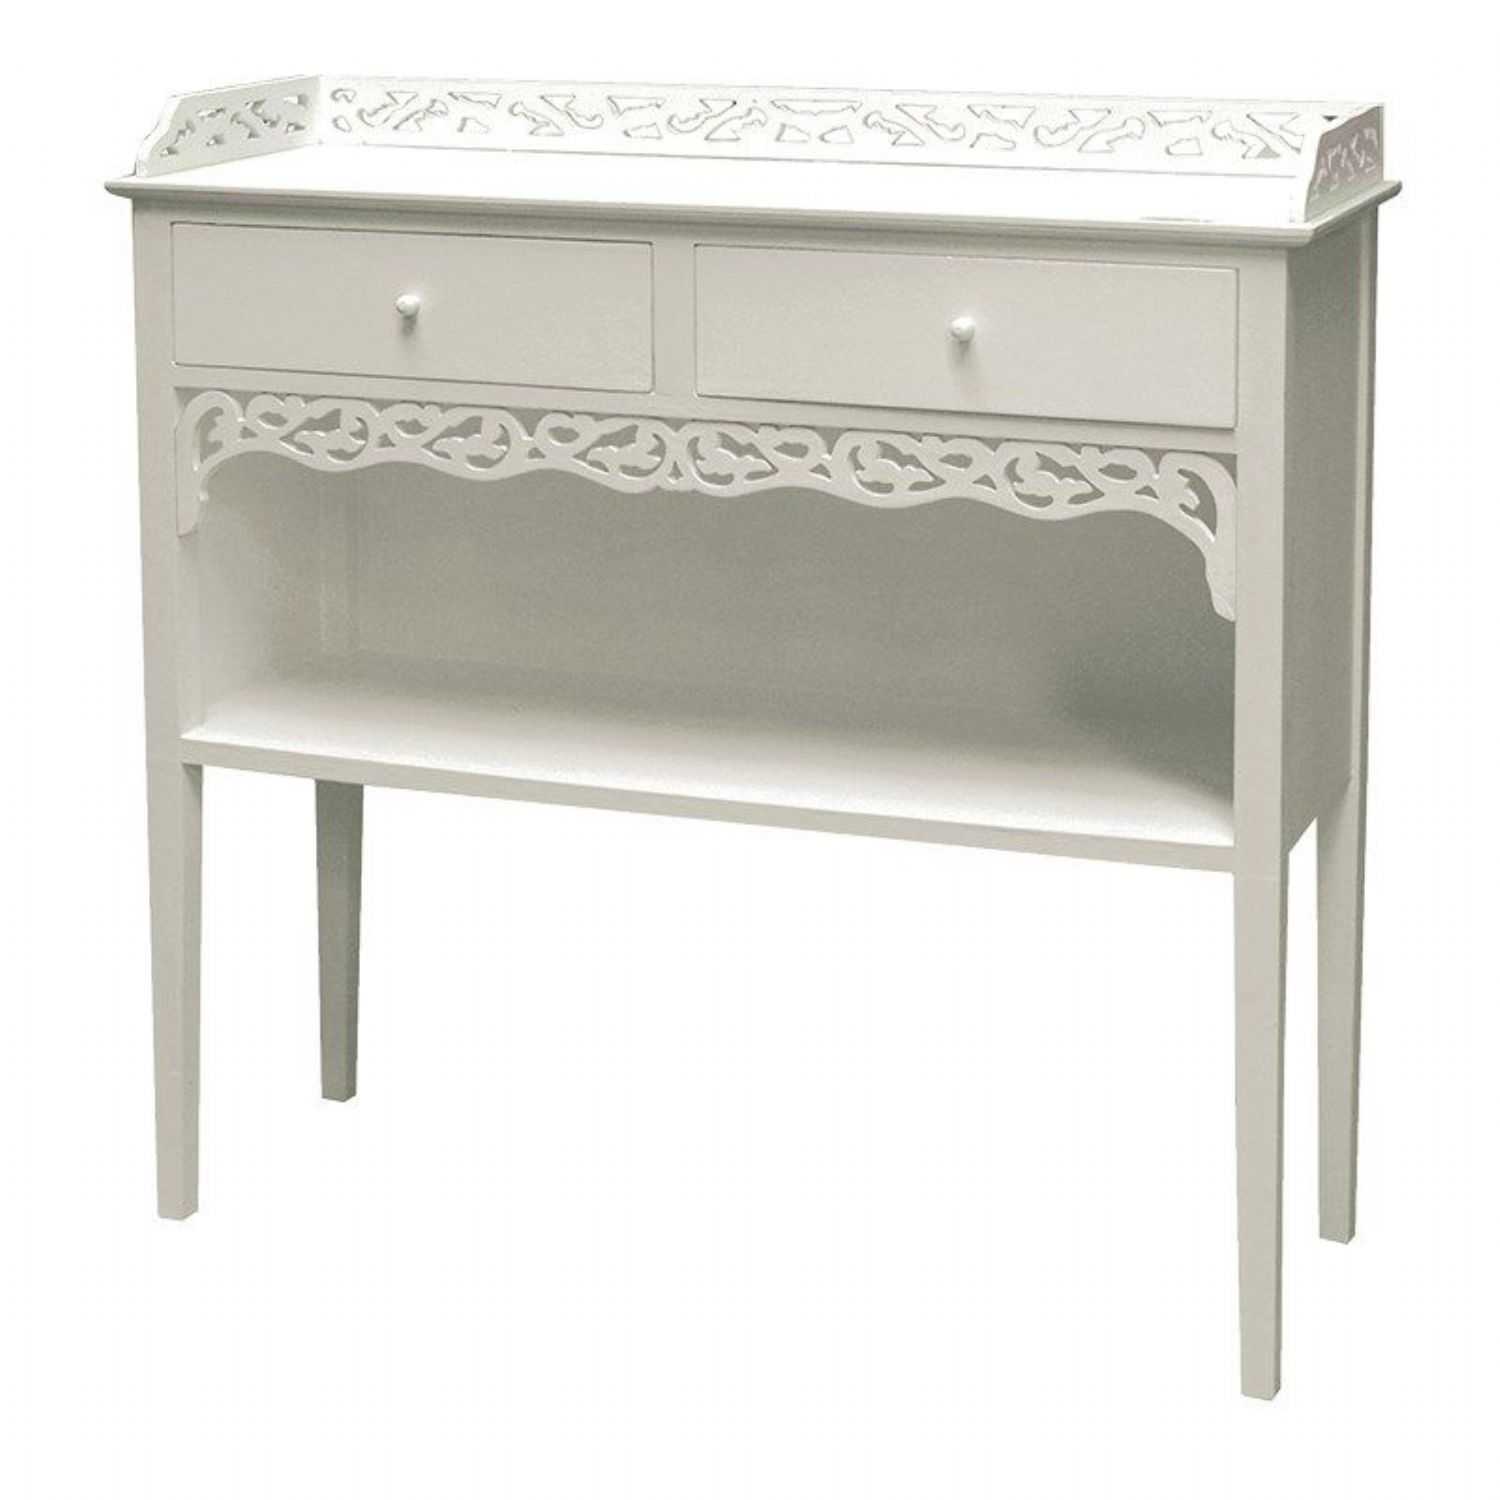 White Painted Shabby Chic Belgravia 2 Drawer Small Hall Console Table